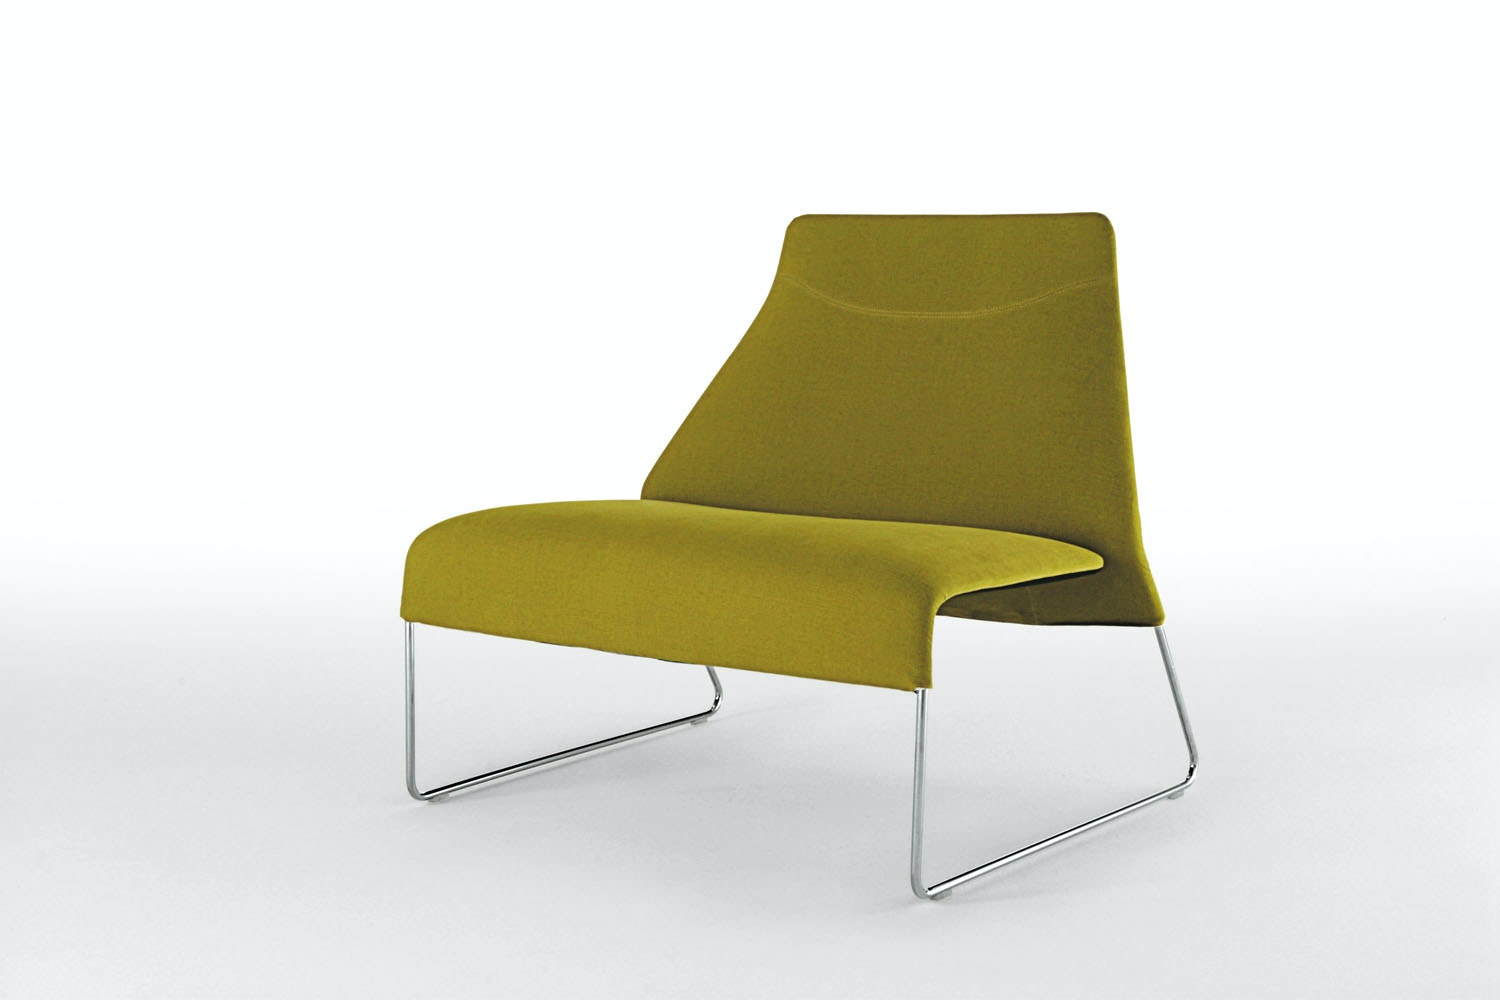 Lazy '05 Armchair in Fabric by Patricia Urquiola for B&B Italia